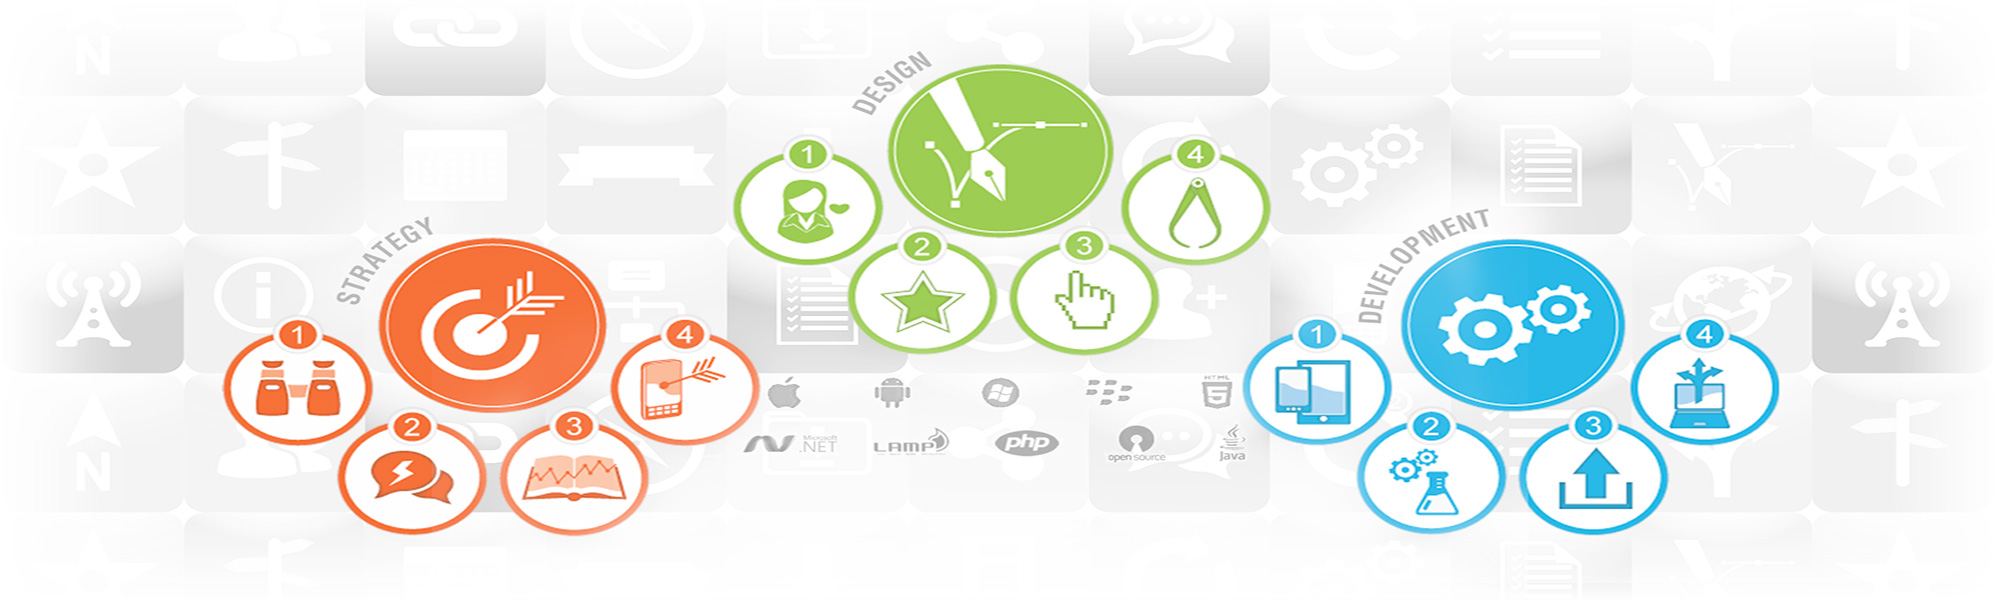 web-site-design-solutions-strategy